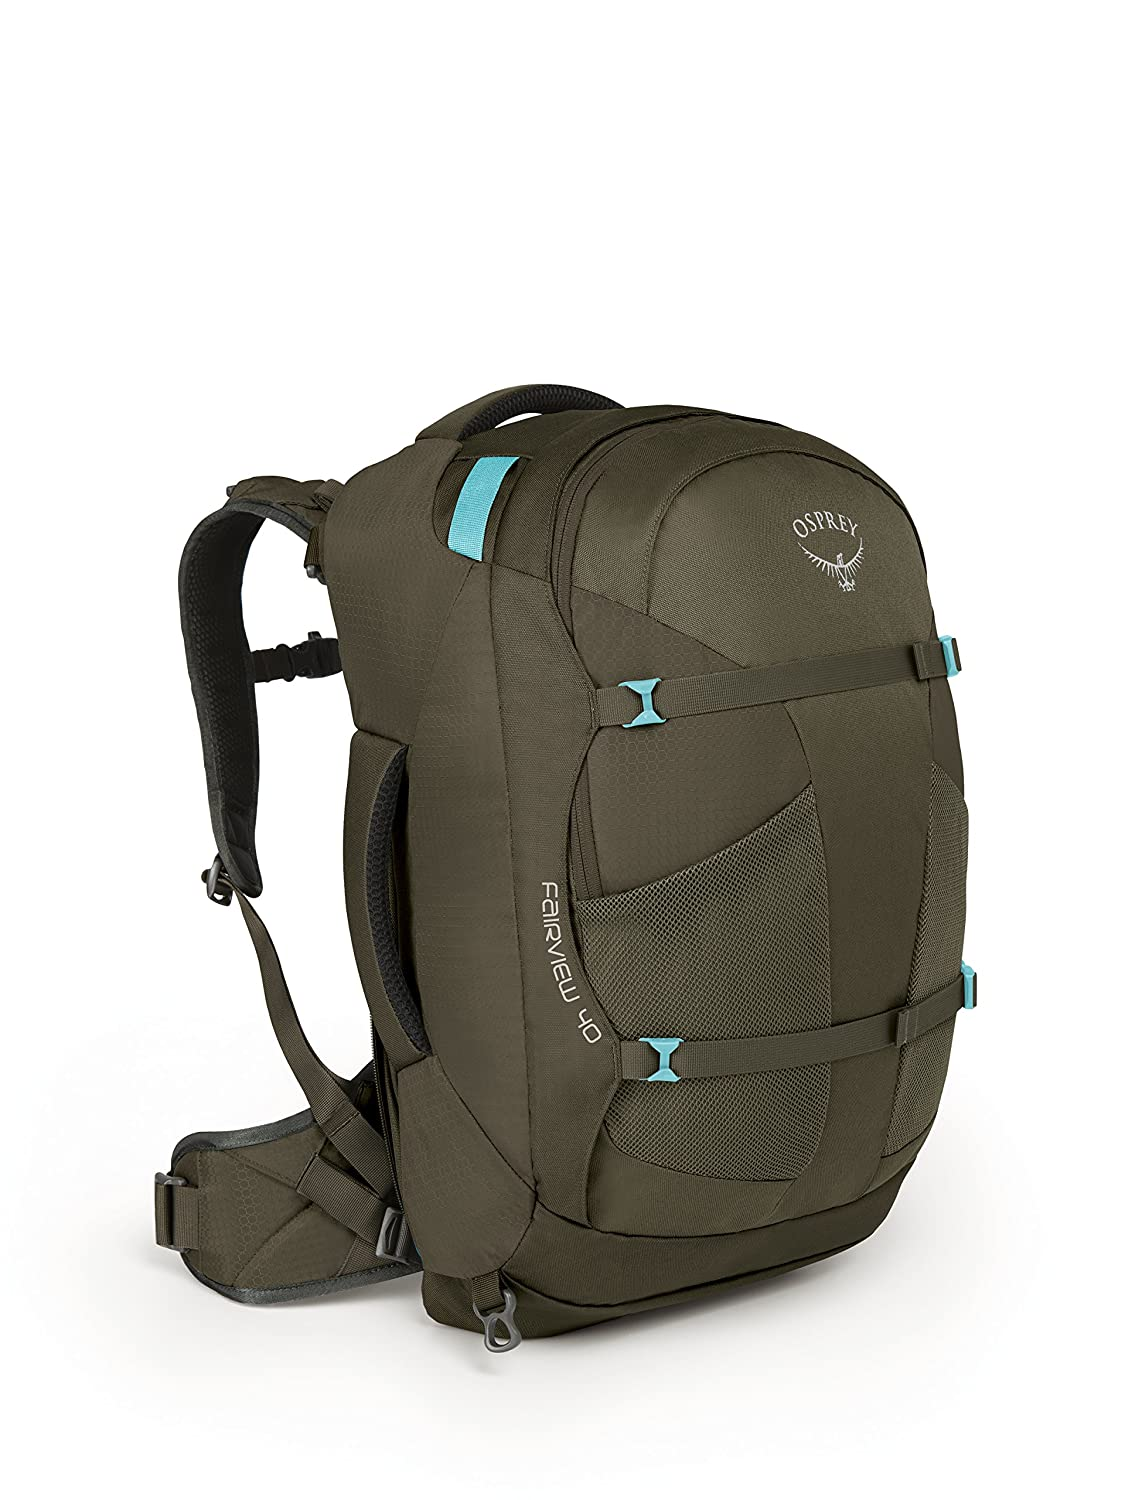 Osprey Fairview 40 Womens Backpack Rainforest Green WS/WM OSPSF|#Osprey 10001132